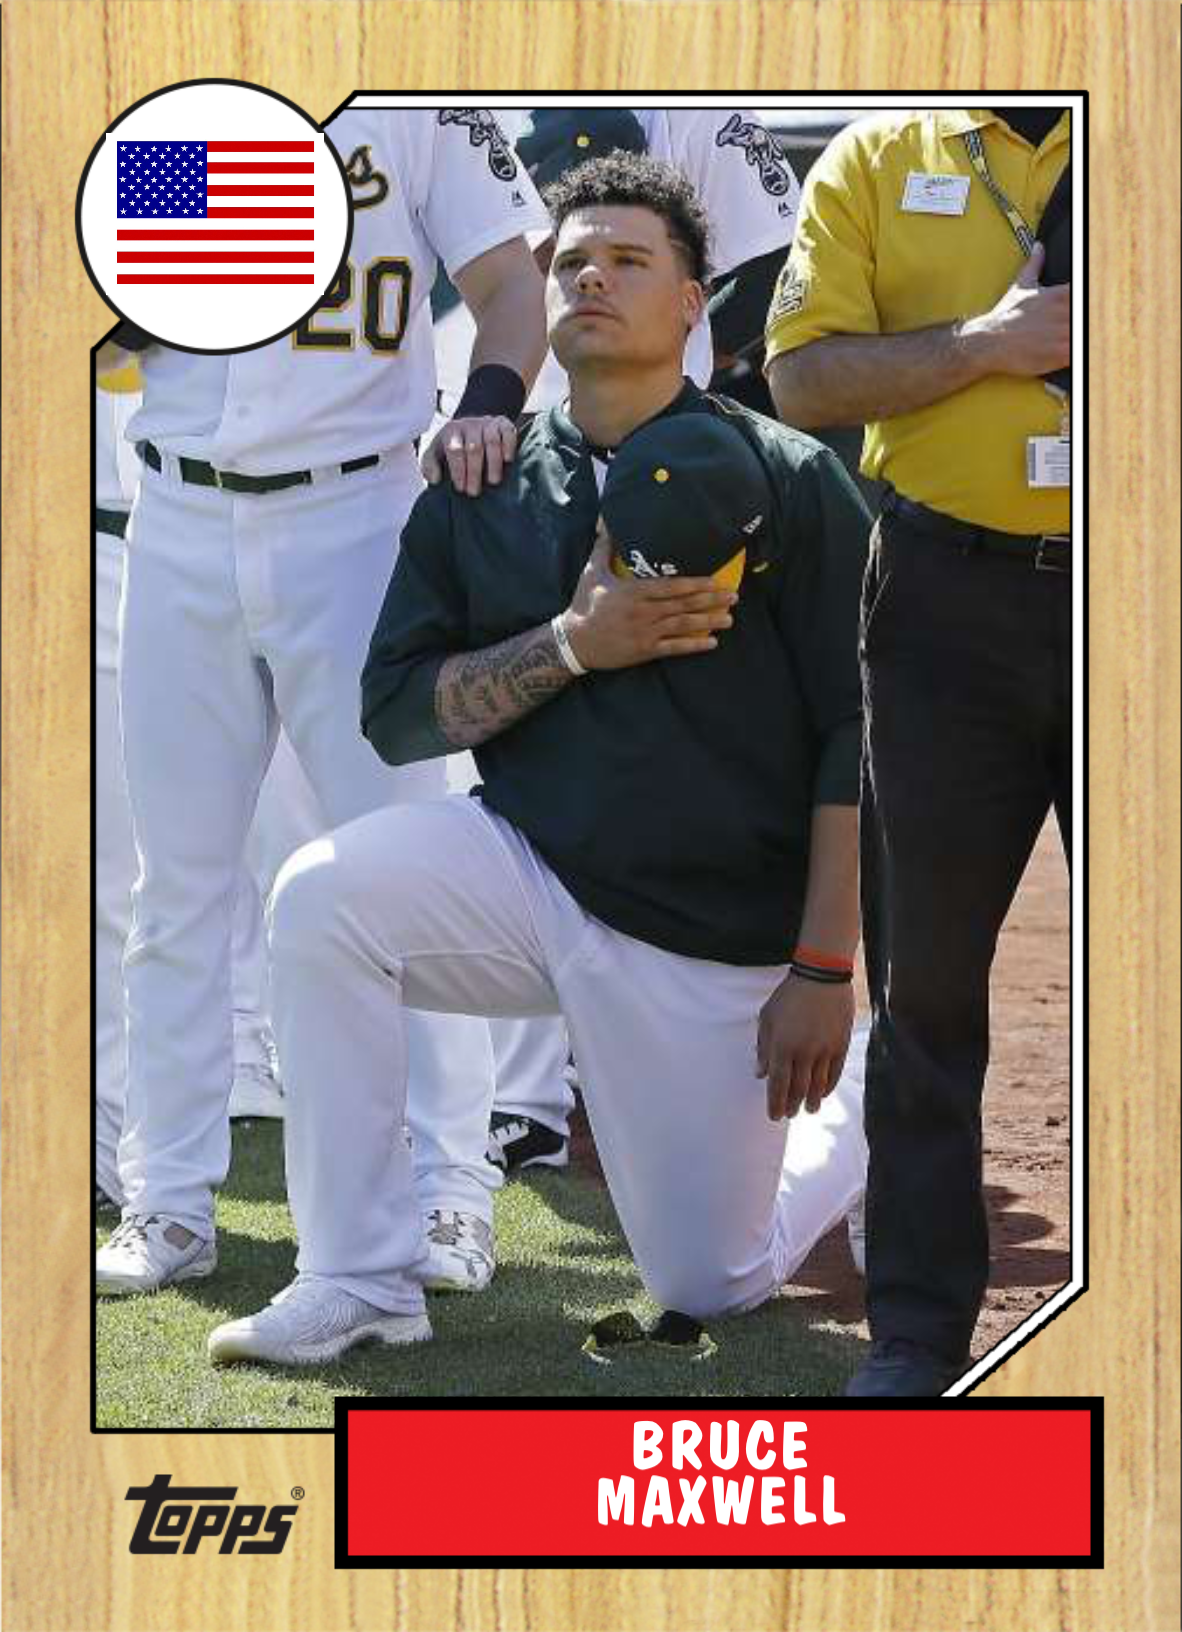 When A S Bruce Maxwell Knelt During The Anthem His College Coach Disagreed Then They Talked Bruce Anthem Taking A Knee